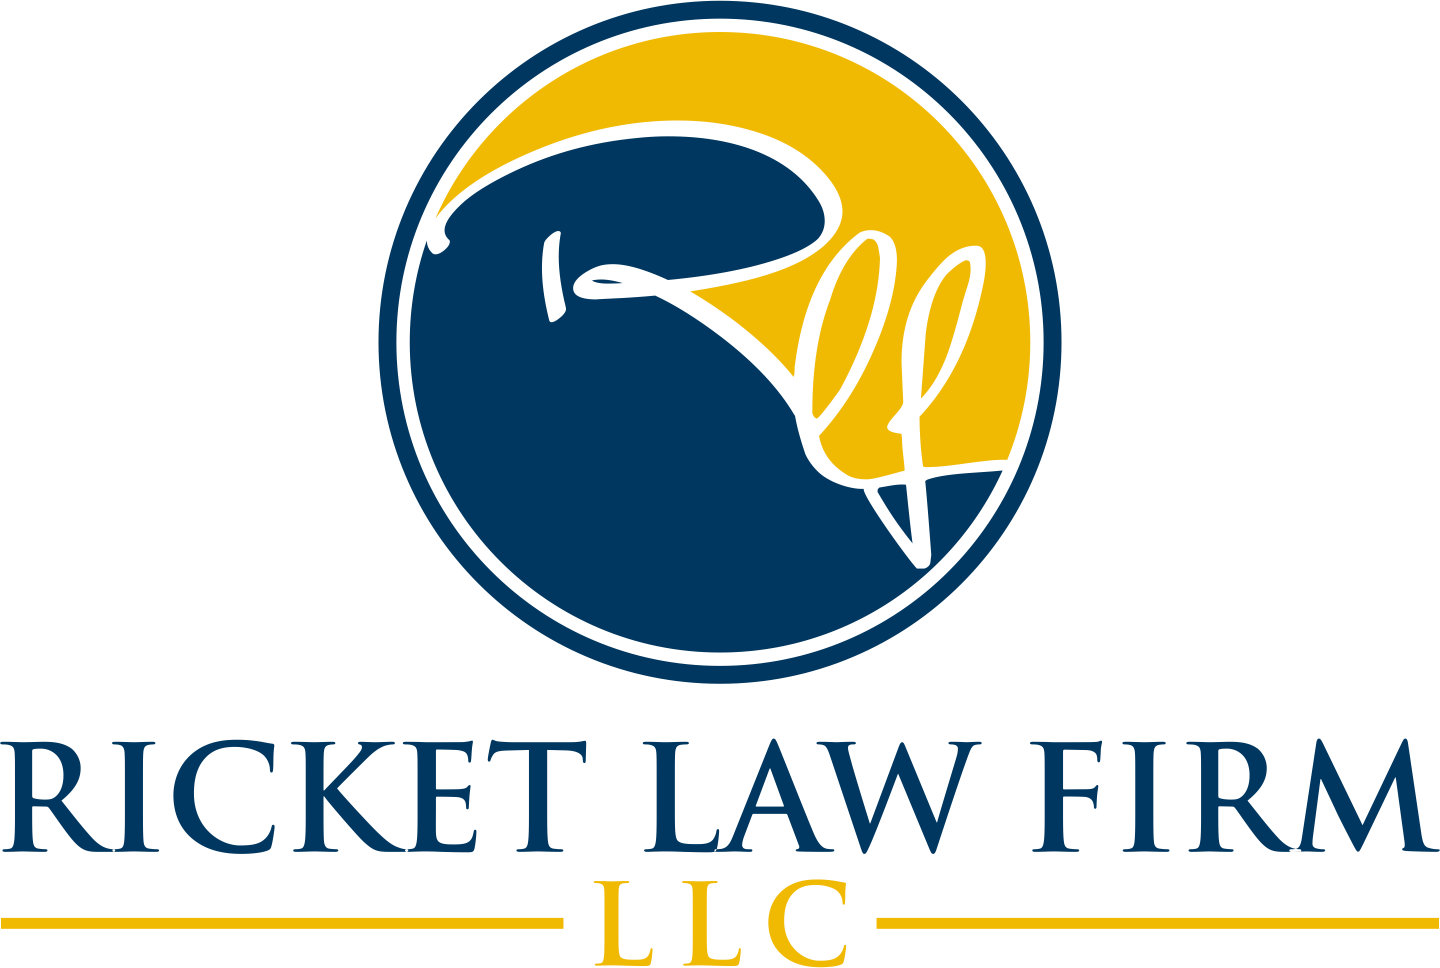 Ricket Law Firm